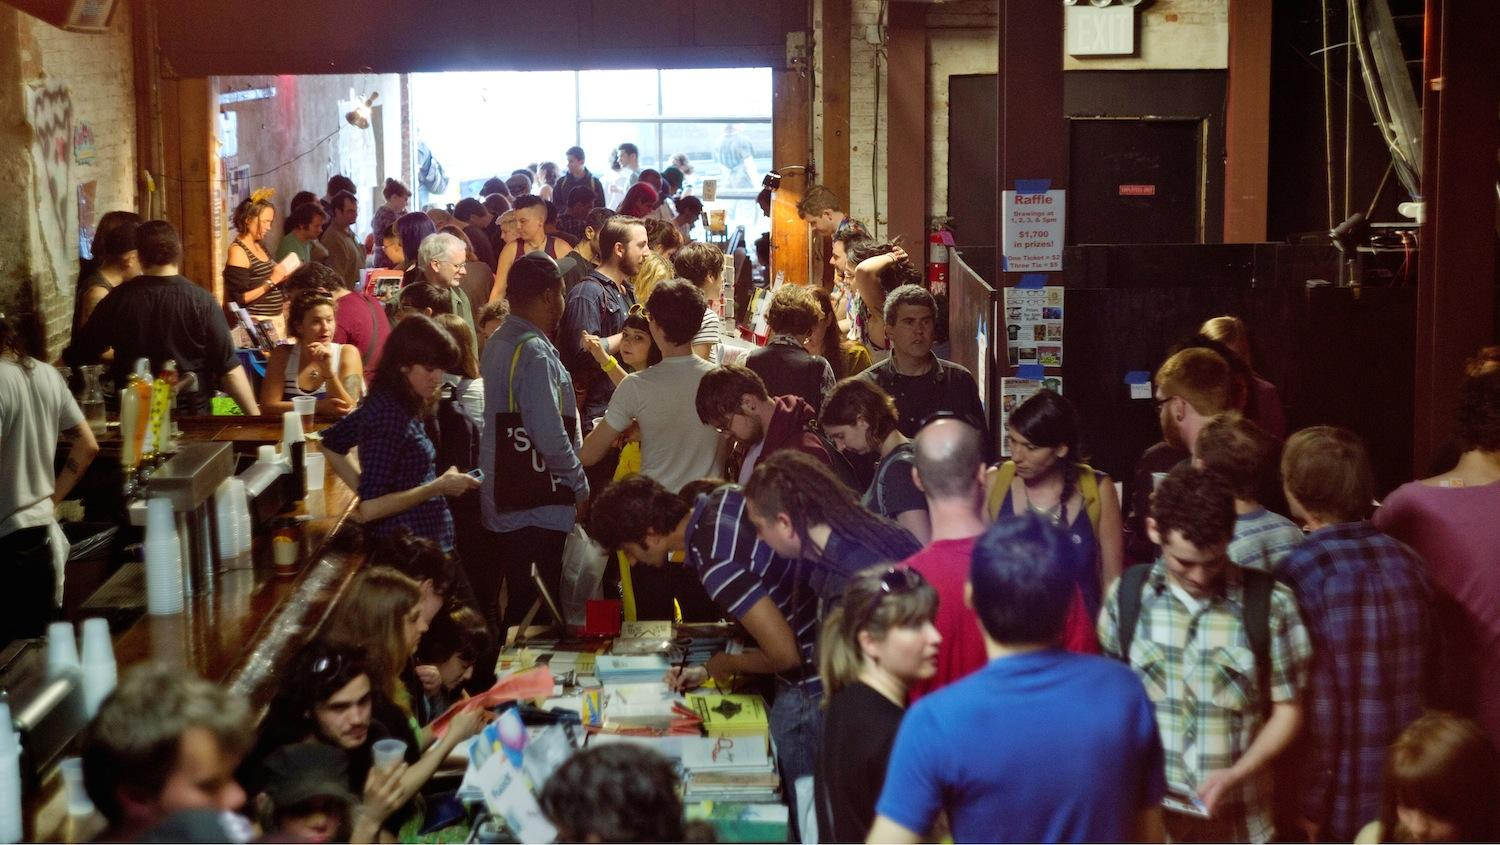 A crowd at the 2012 Brooklyn Zine Festival. (Courtesy of BrooklynZine/Photo by Eric Epstein)